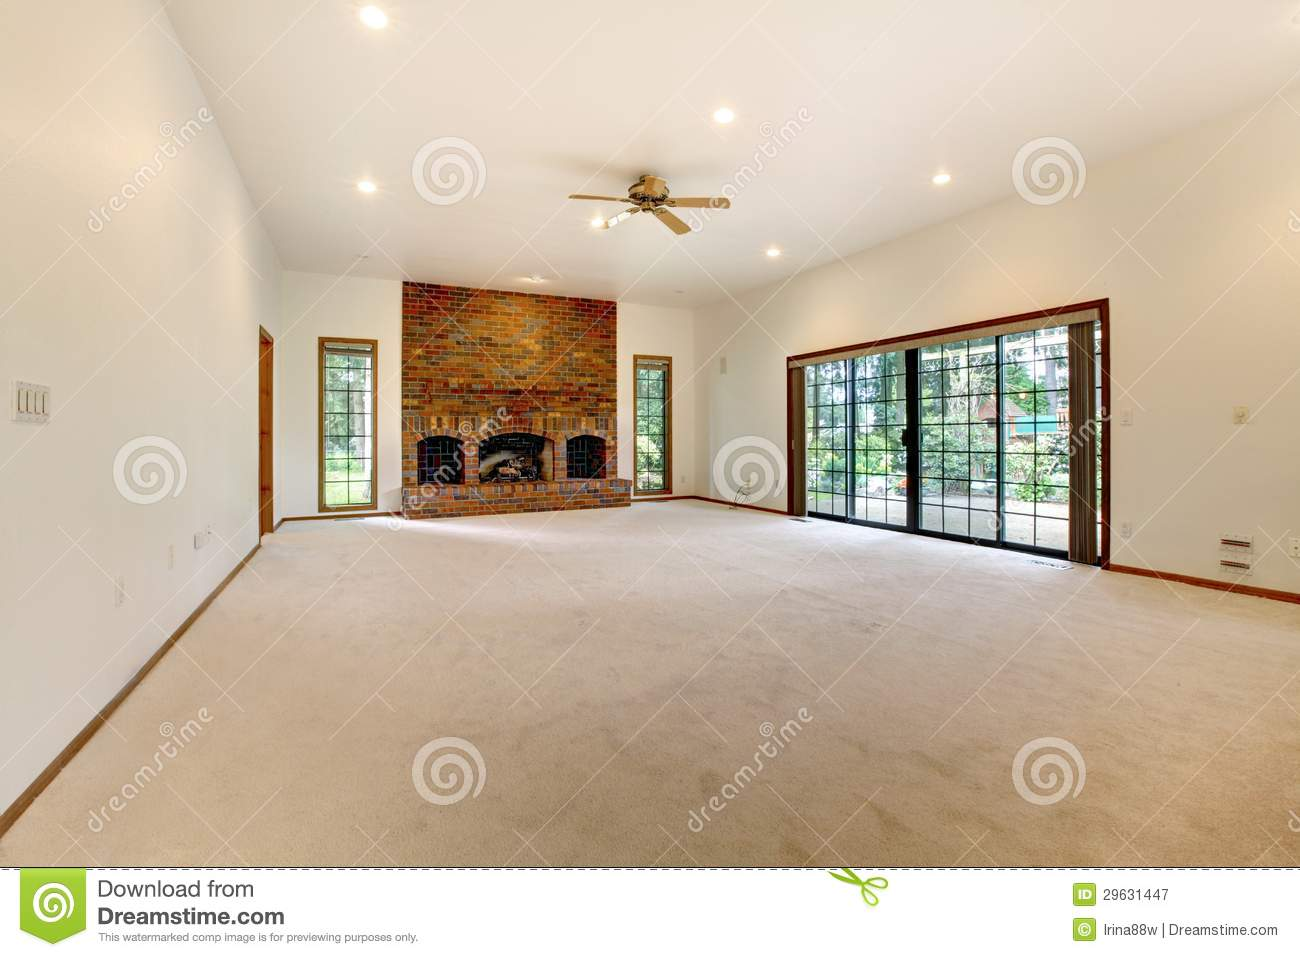 Empty living room with carpet - Very Large Empty Living Room With Brick Fireplace Royalty Free Stock Photography